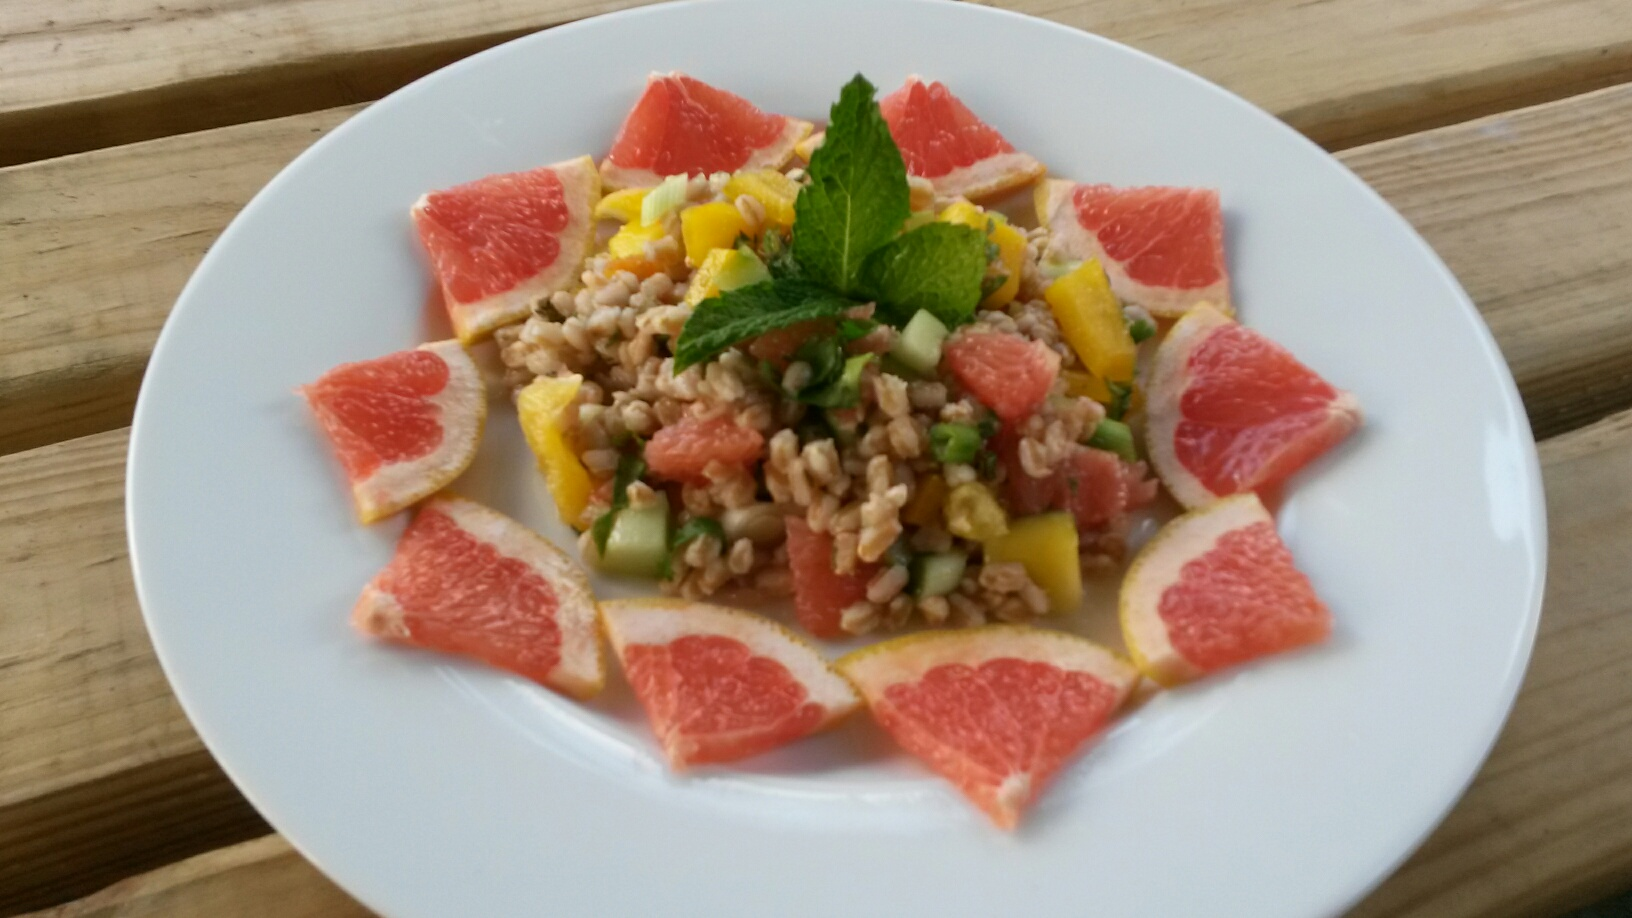 Grainy Grapefruit salad